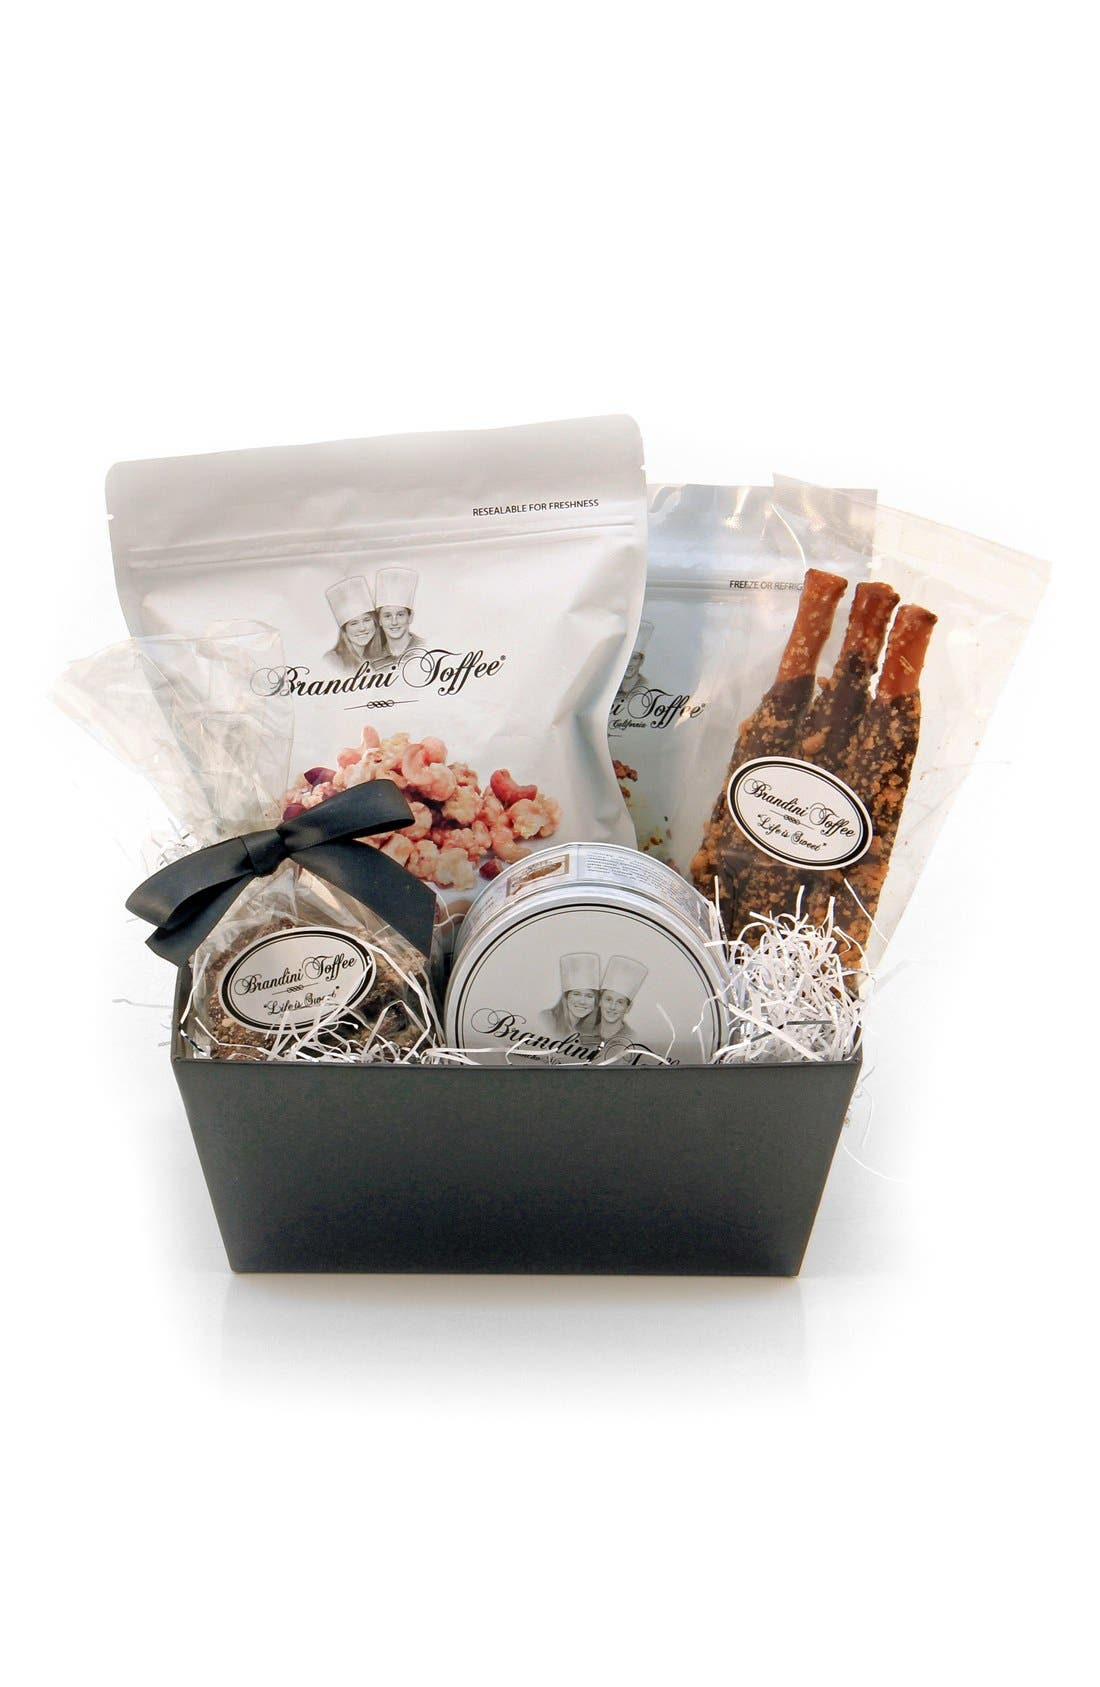 Main Image - Brandini Toffee Small Gift Basket